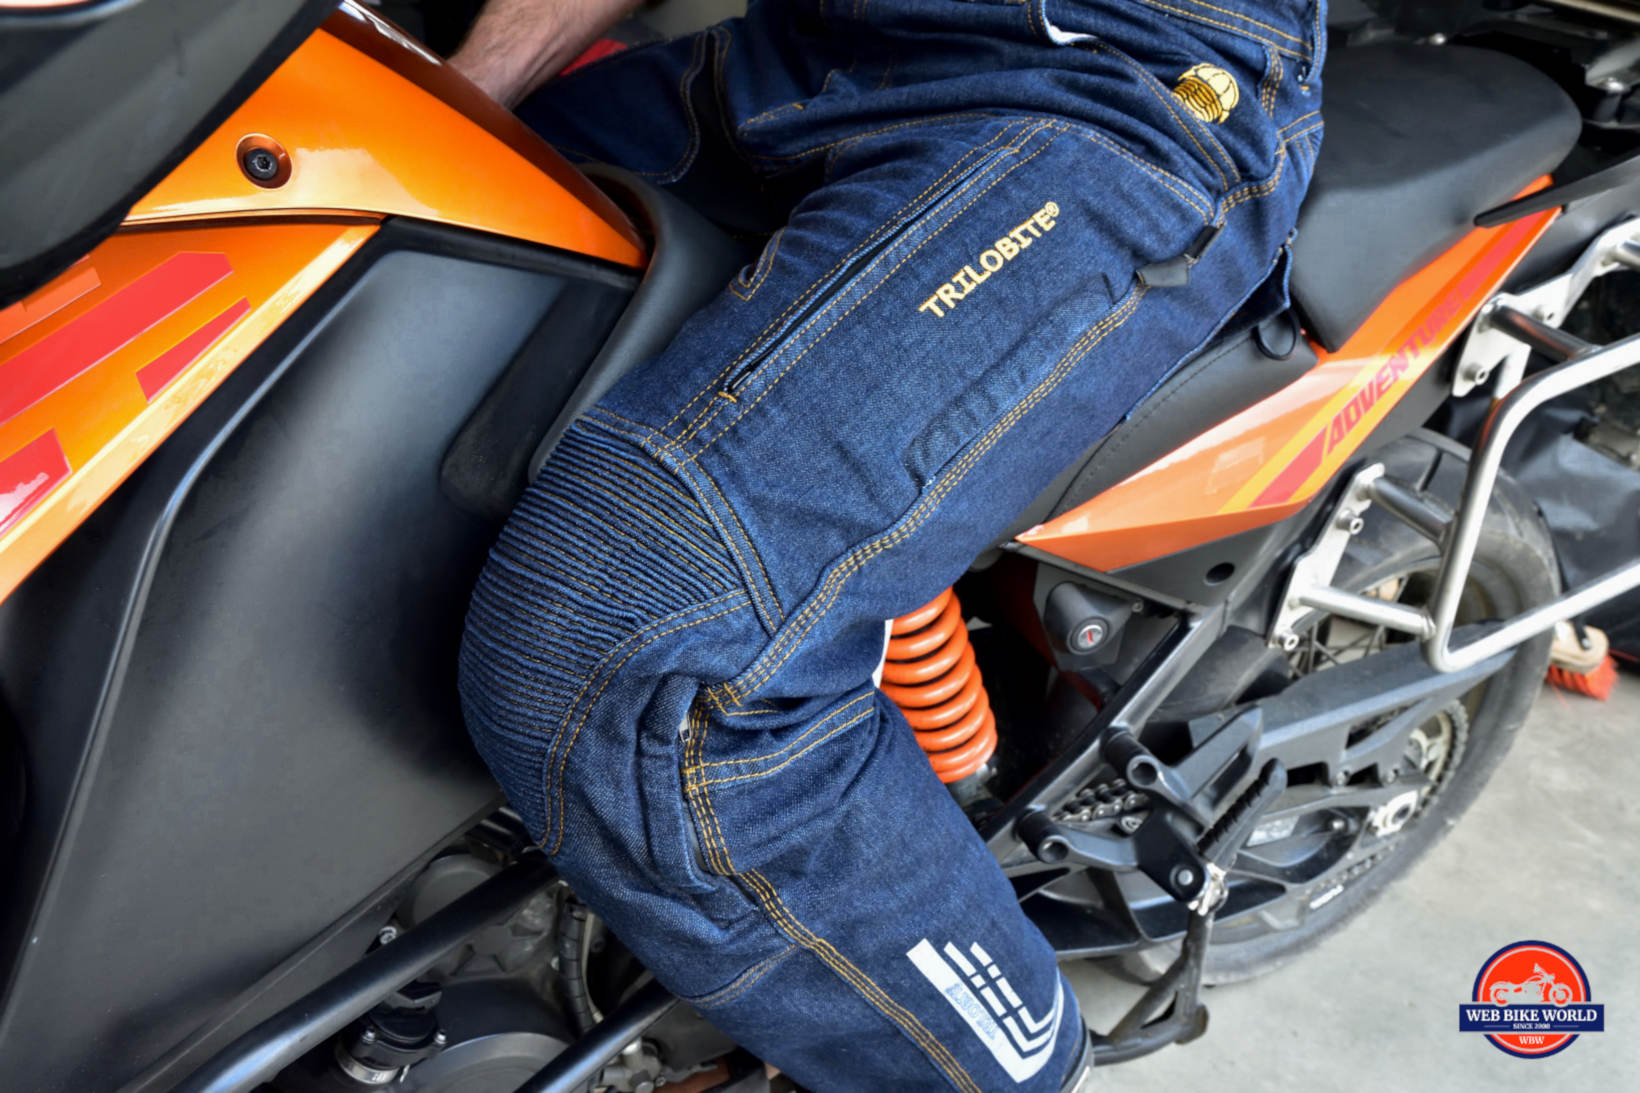 Trilobyte Probut X-Factor Cordura Denim Jeans on Bike